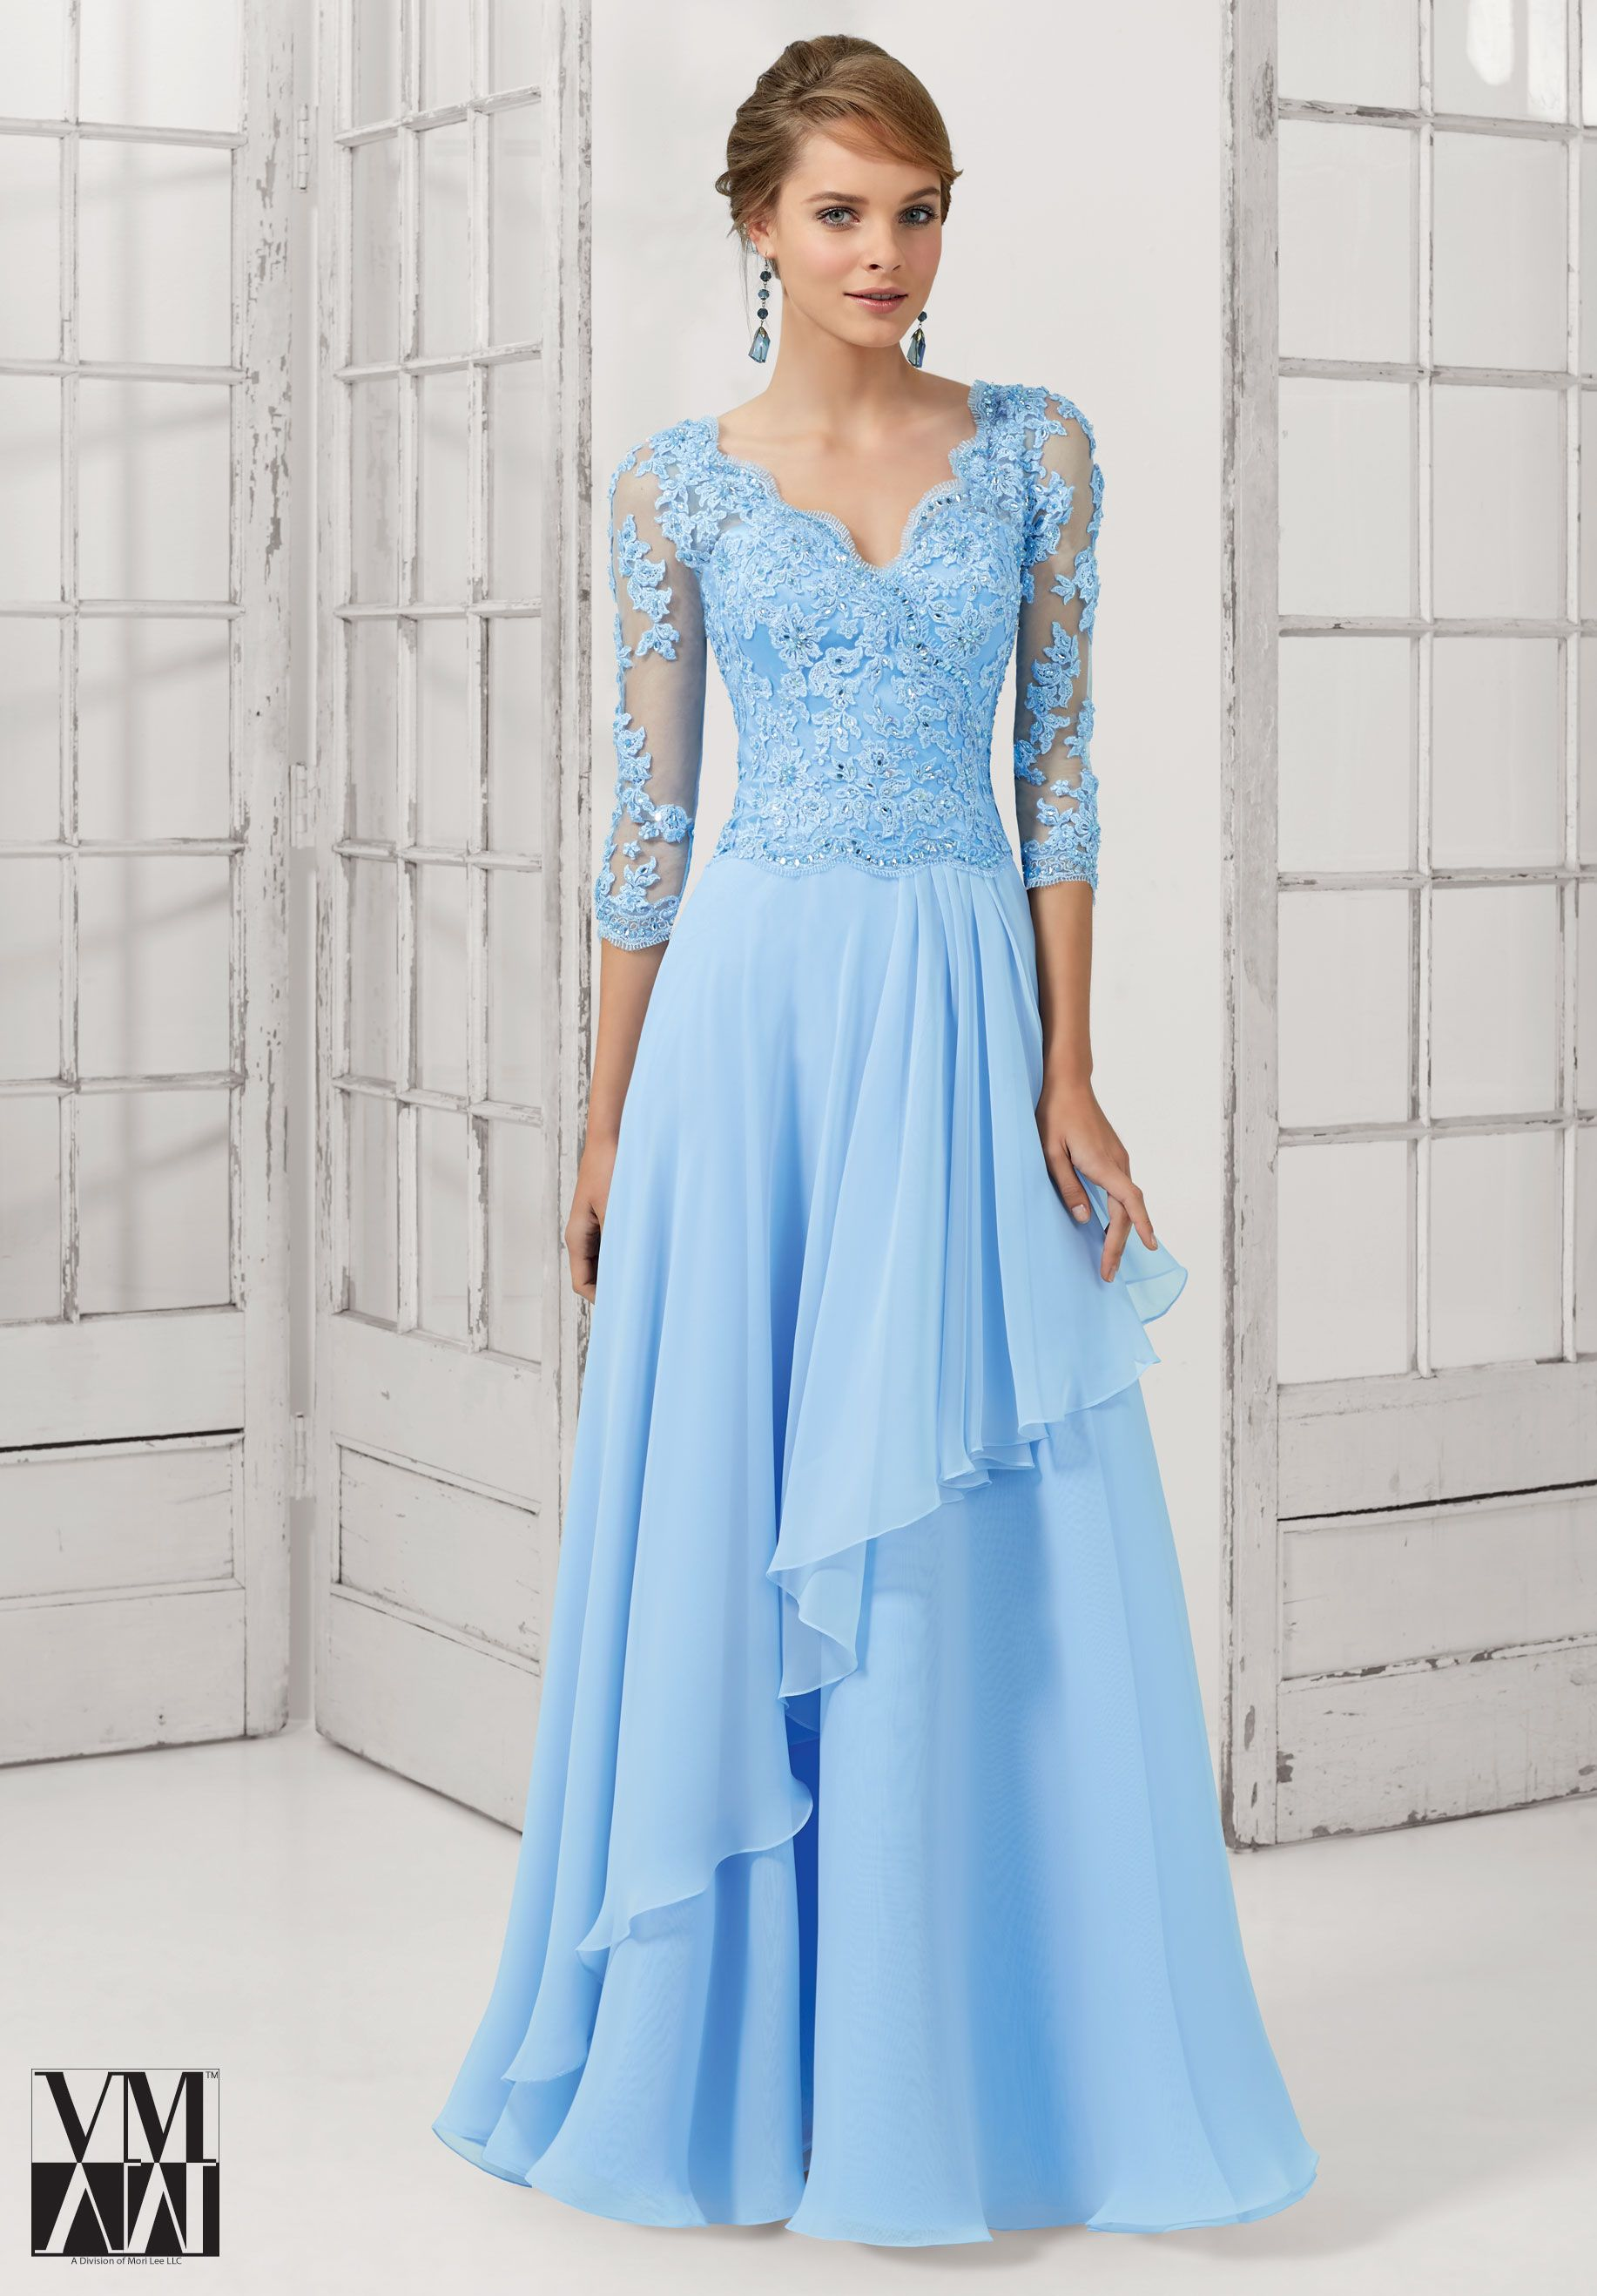 Mother of the bride dress from stardust celebrations plano texas